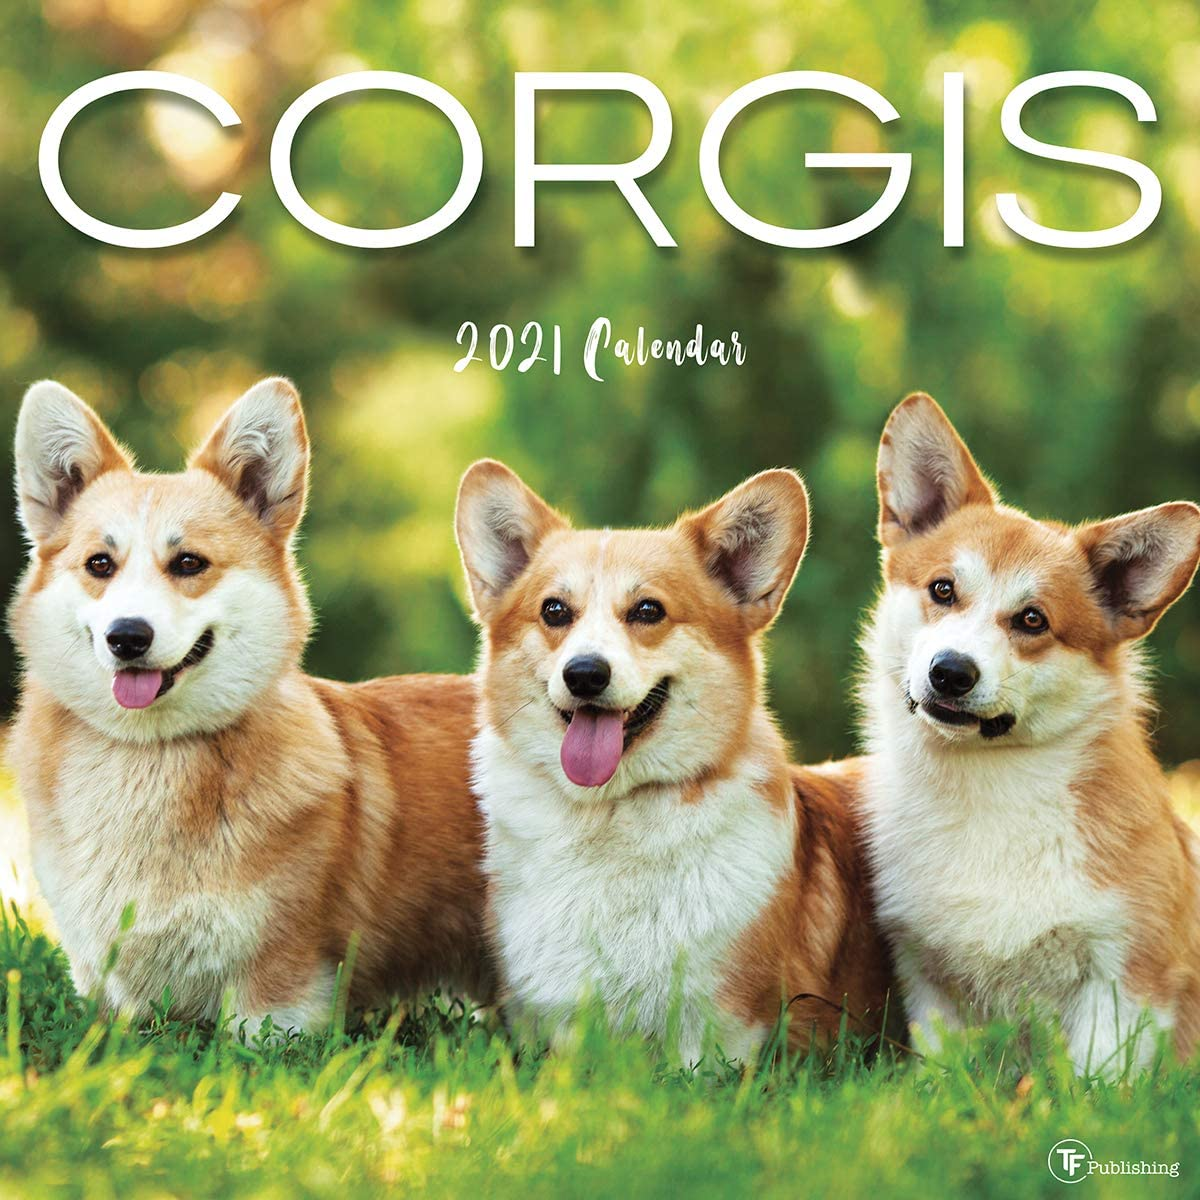 "TF PUBLISHING 2021 Corgis Monthly Wall Calendar - Photographs Appointment Tracker with Contacts and Notes Page - Enhance Home or Office Planning and Organization - Premium Gloss Paper 12""x12"""